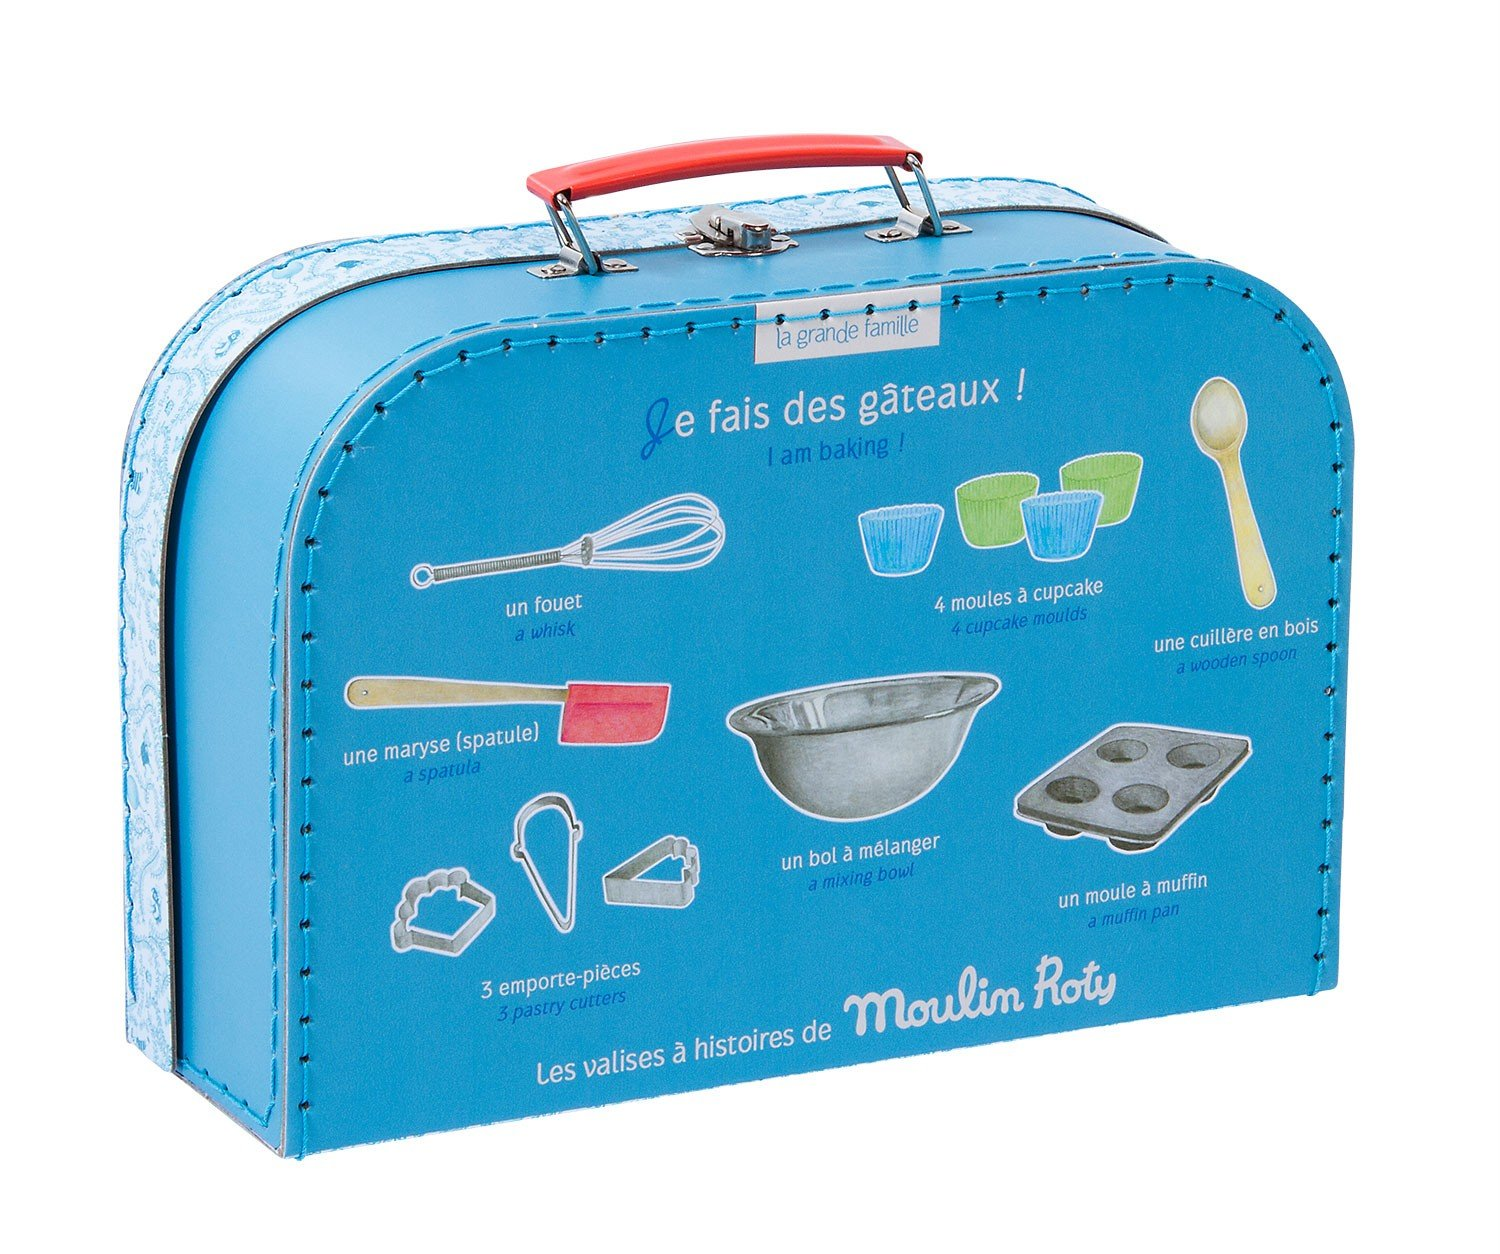 Moulin Roty Je Fais Des Gateaux ''I Am Baking Pastries!'' Child Sized Cooking Tools Toy Set in Carry Suitcase by Le Grande Famille (Image #3)